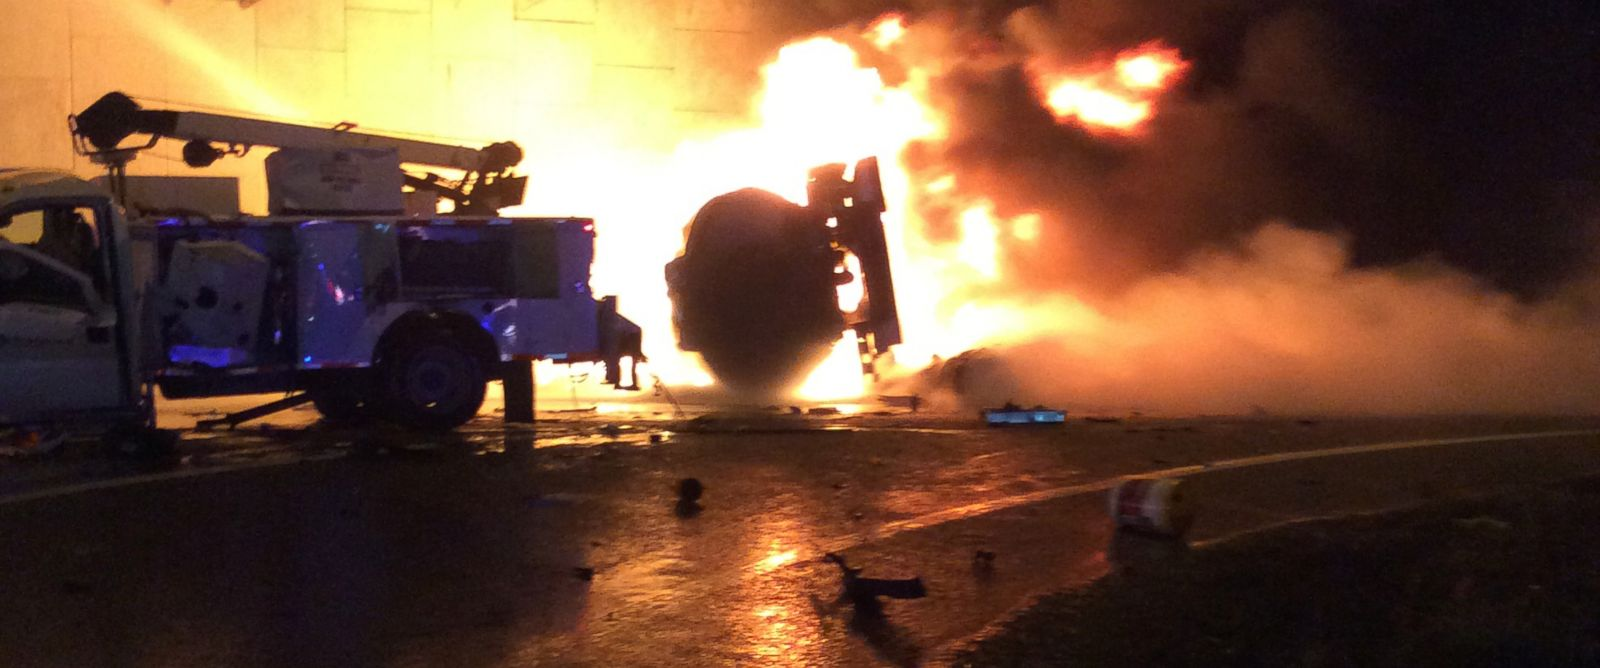 PHOTO: Flames are visible after a crash in St. Petersburg, Fla. involving a tanker truck, Jan. 6, 2014.